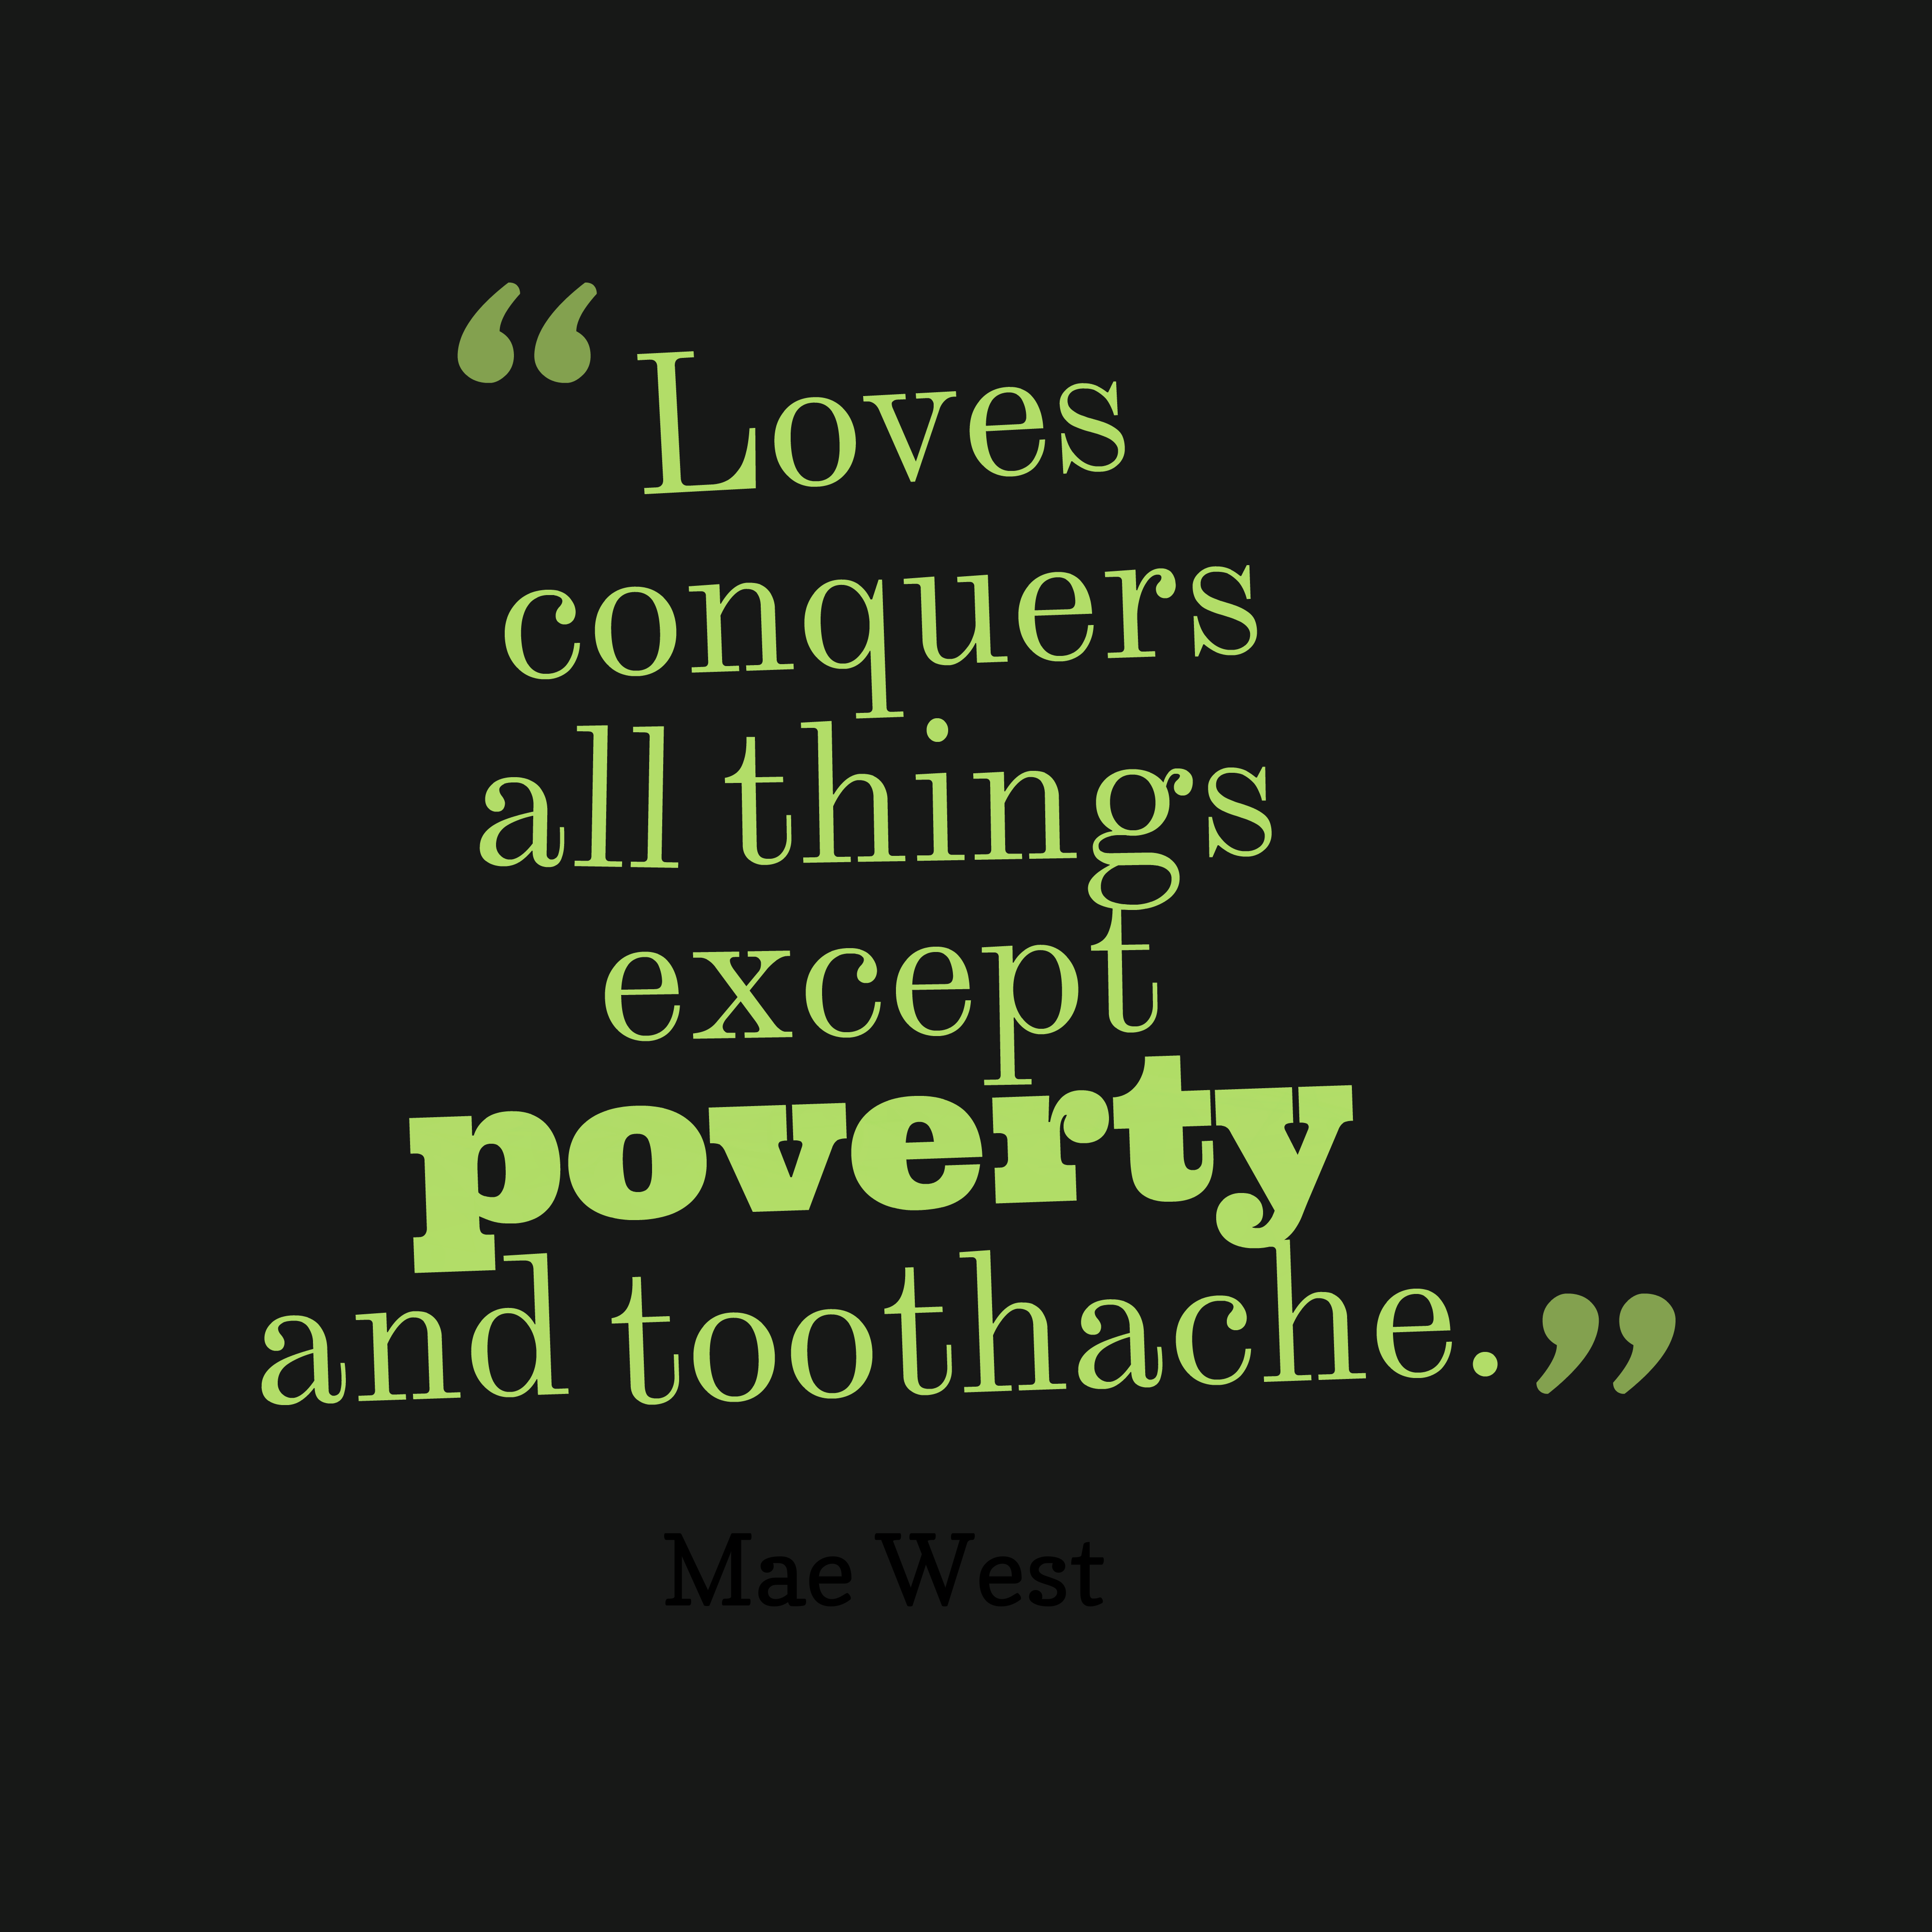 Quotes image of Loves conquers all things except poverty and toothache.